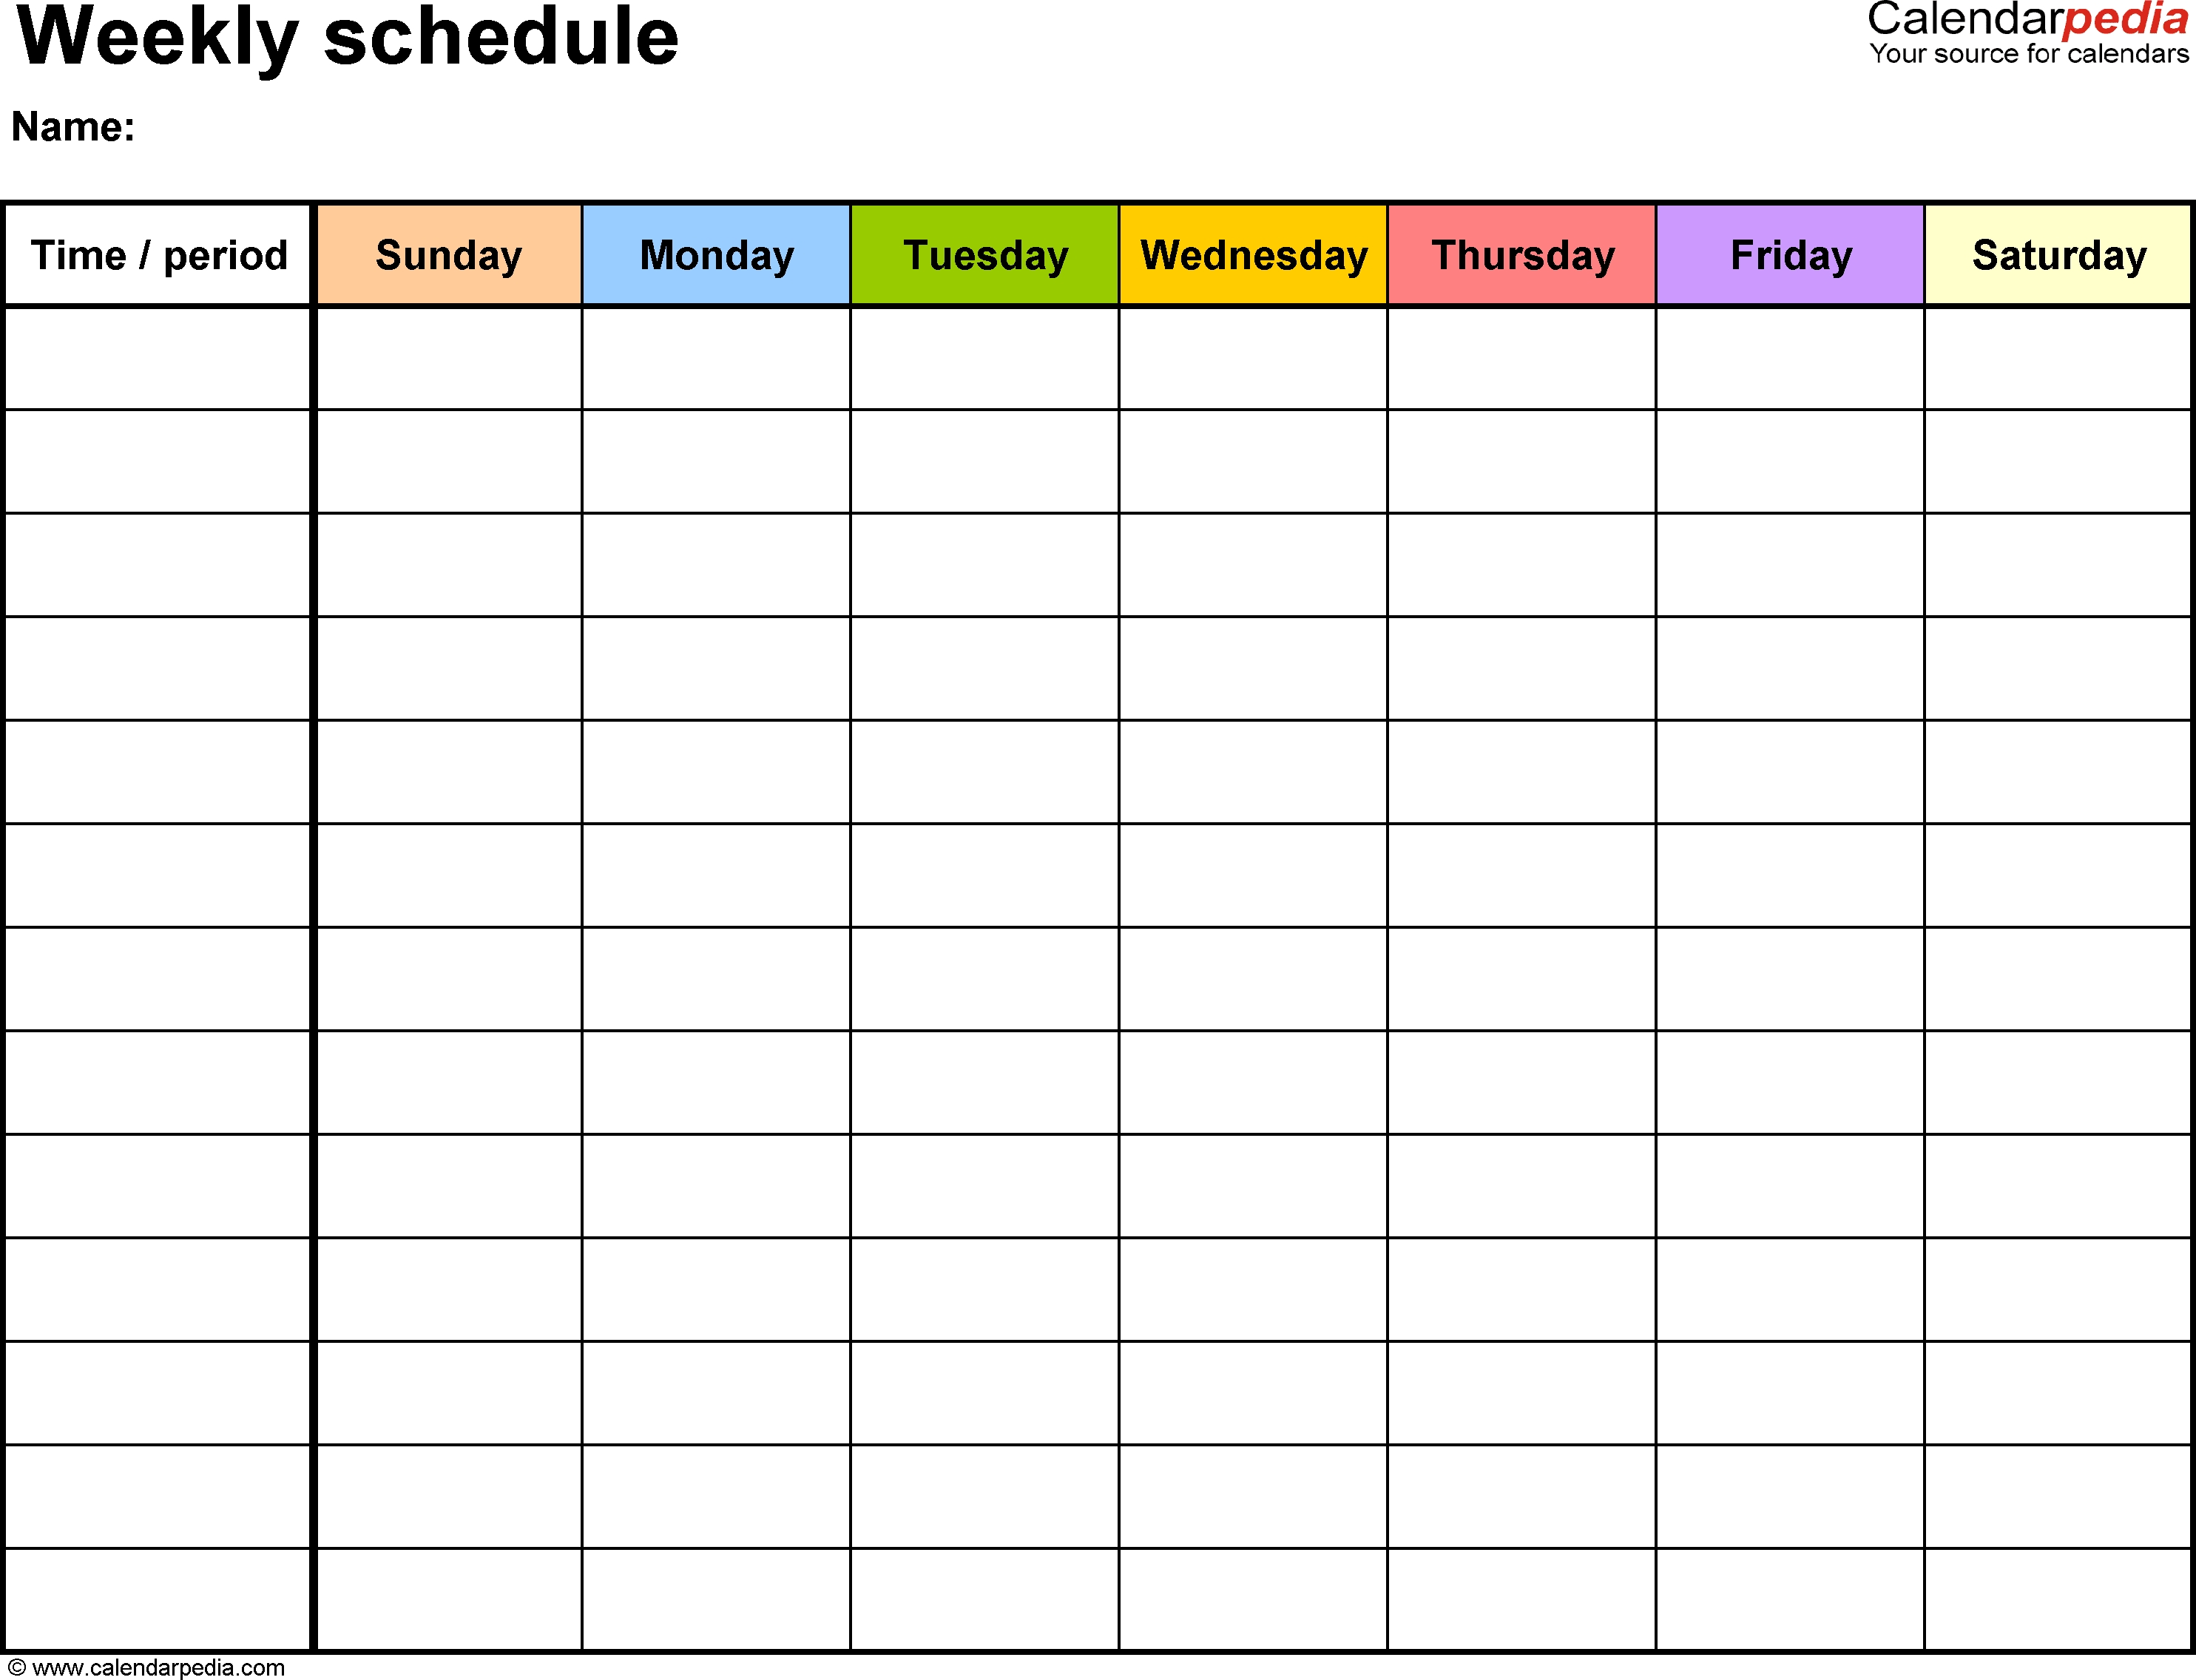 Free Weekly Schedule Templates For Word - 18 Templates for Monthly Calendar Monday Through Friday